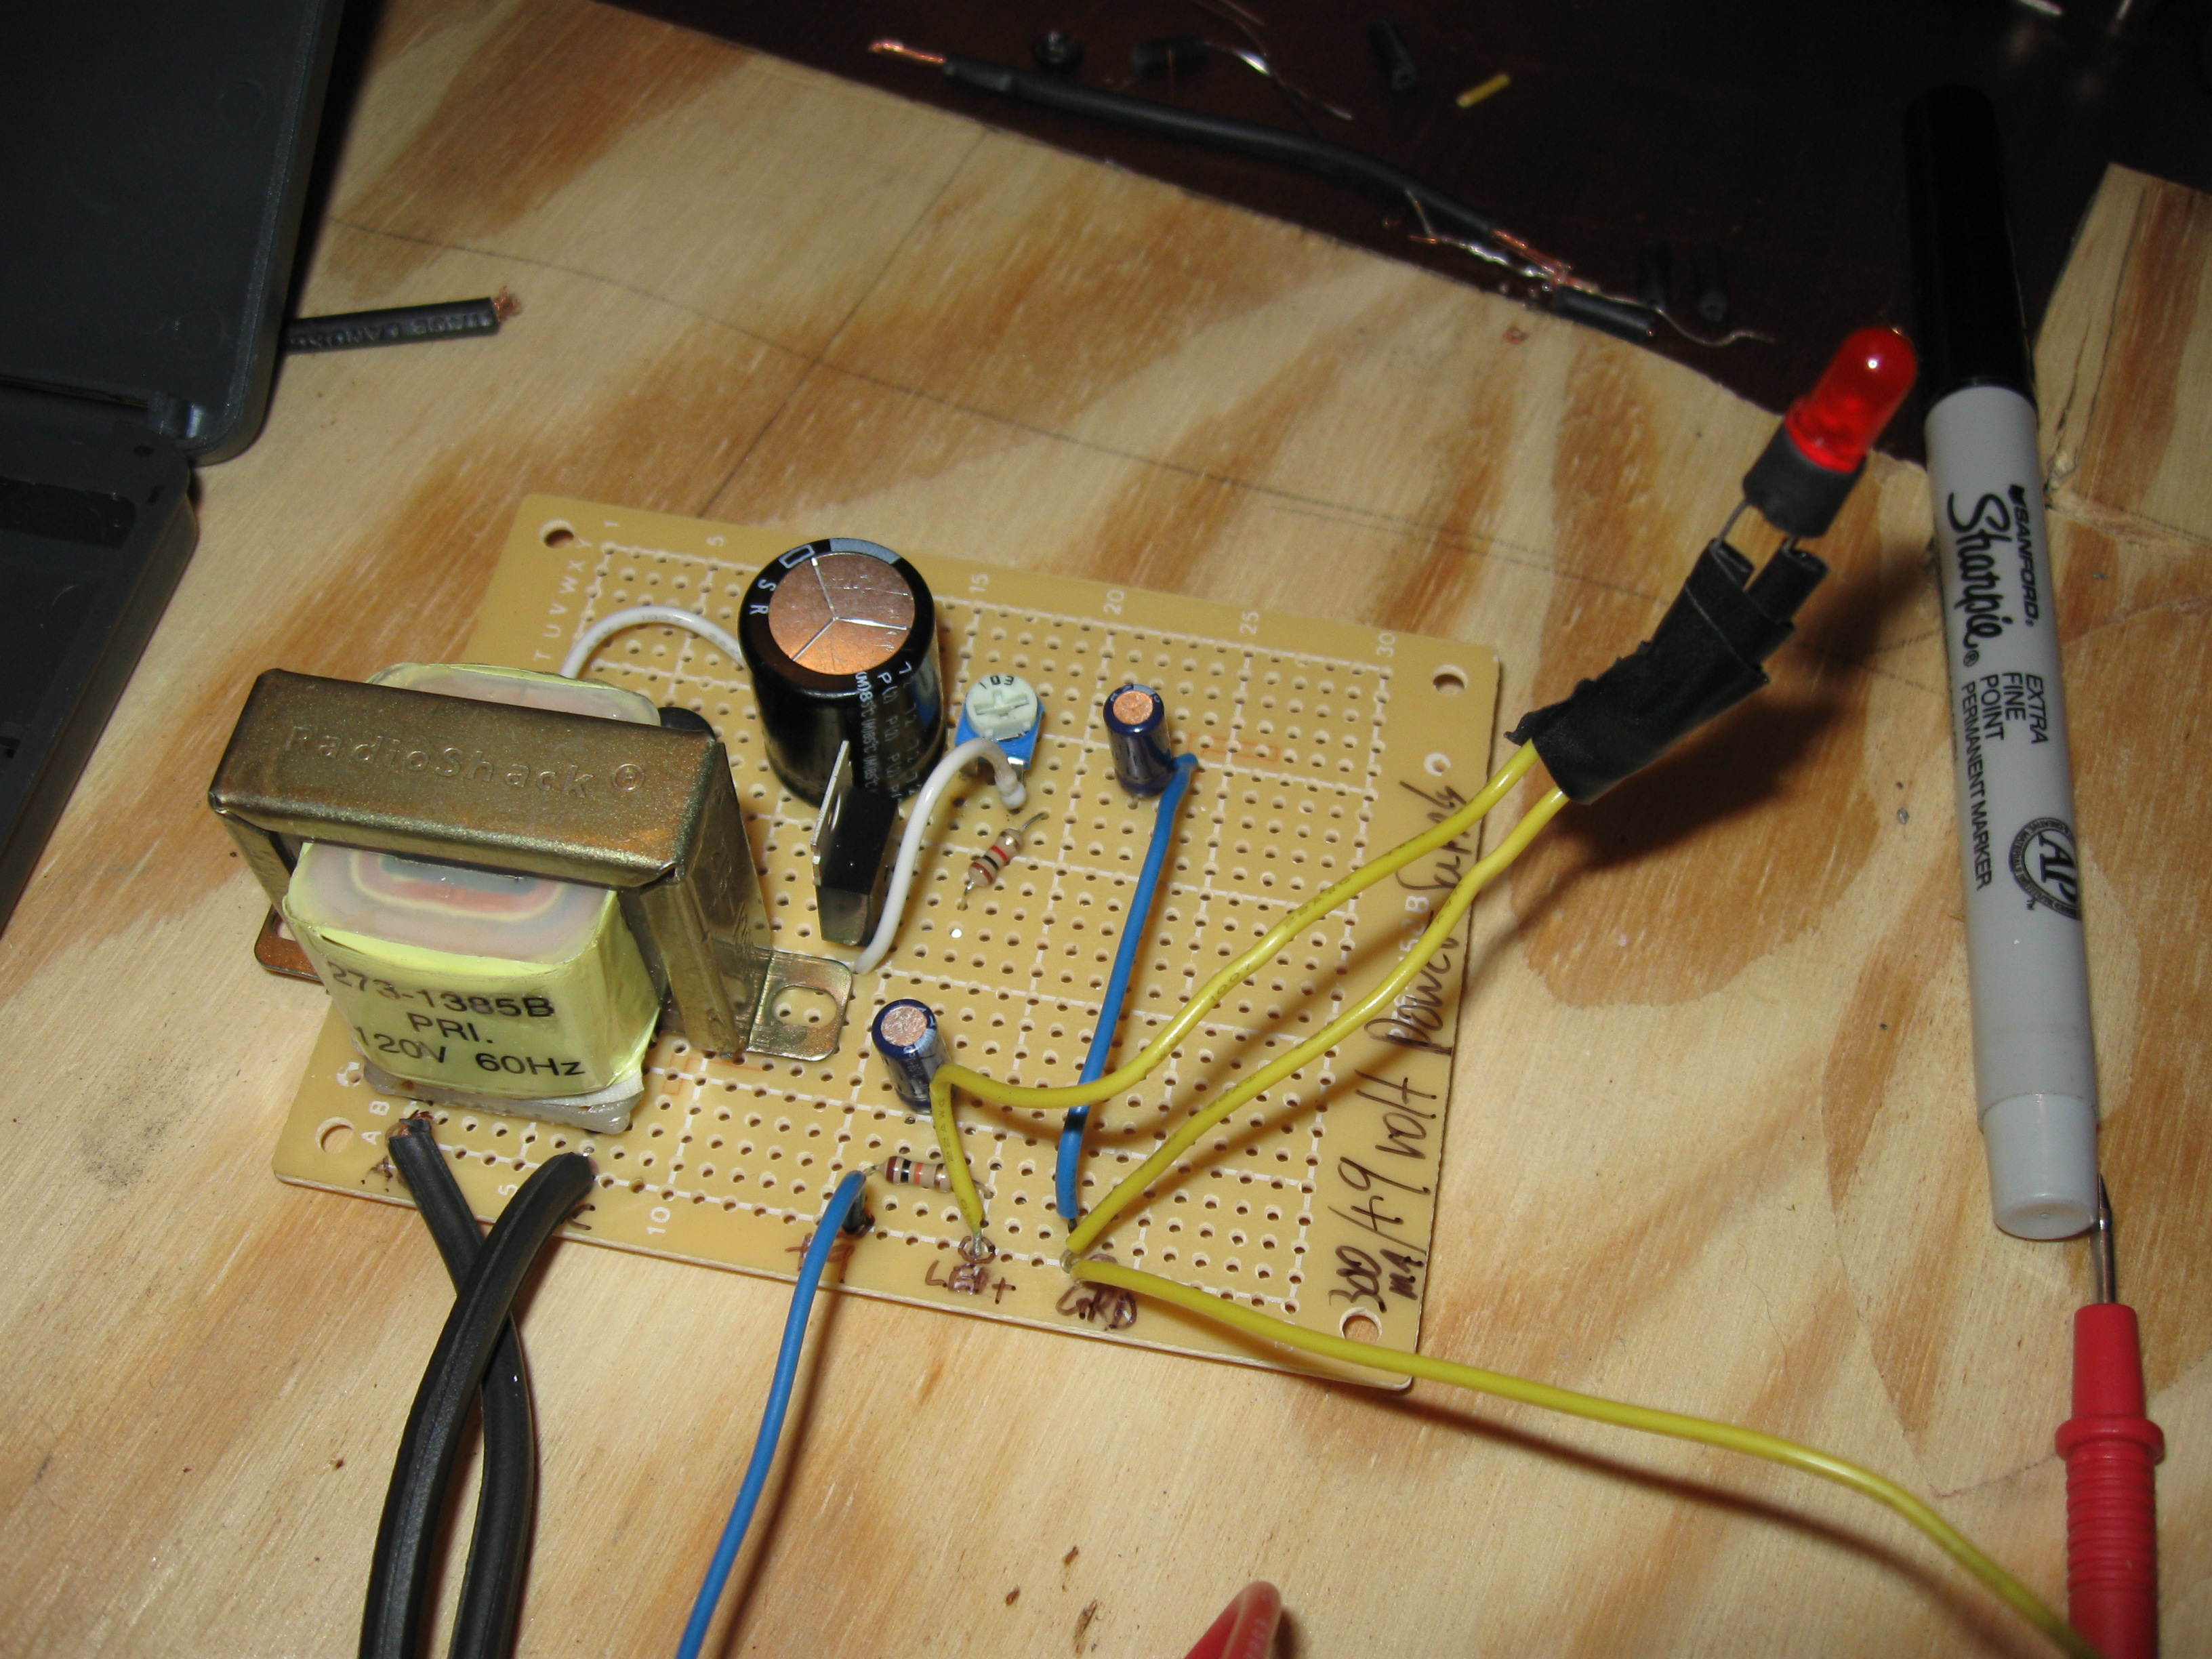 Diy Power Supply For Guitar Effect Pedals Dannix Variable Supplies Projects And Circuits Circuit Board Stomp Boxes